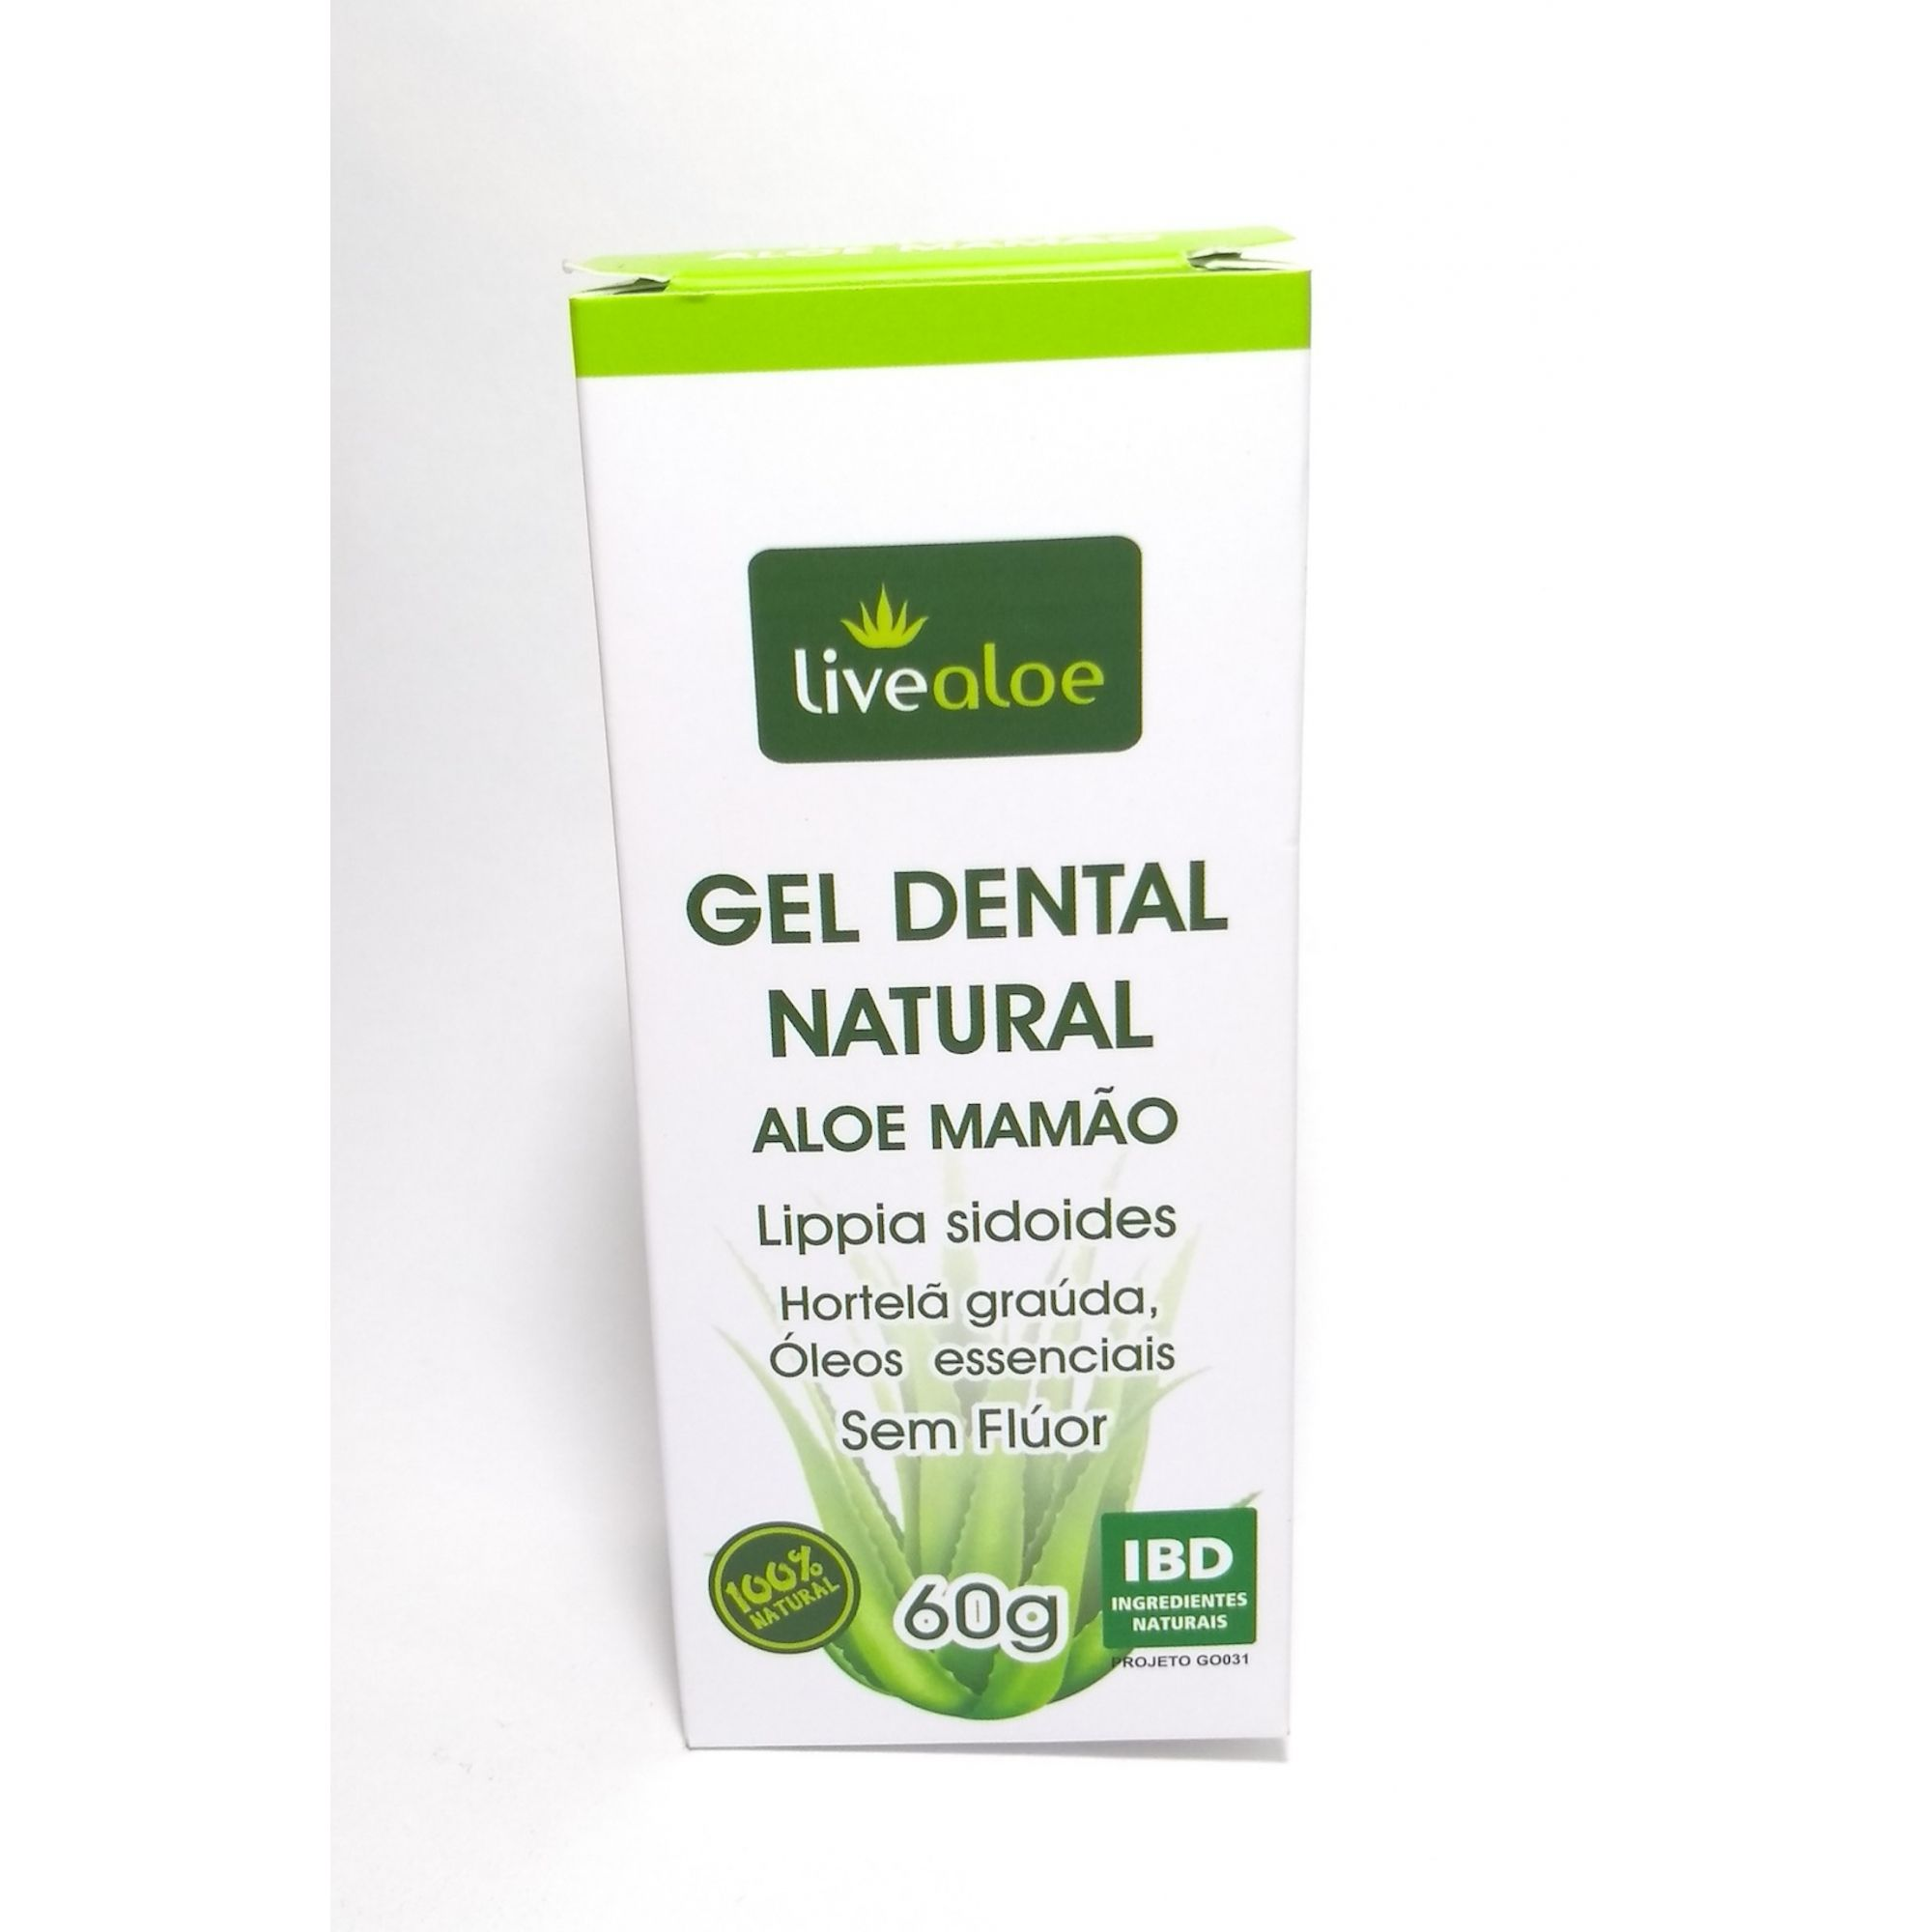 Gel dental natural, aloe mamão, 60g – Live Aloe